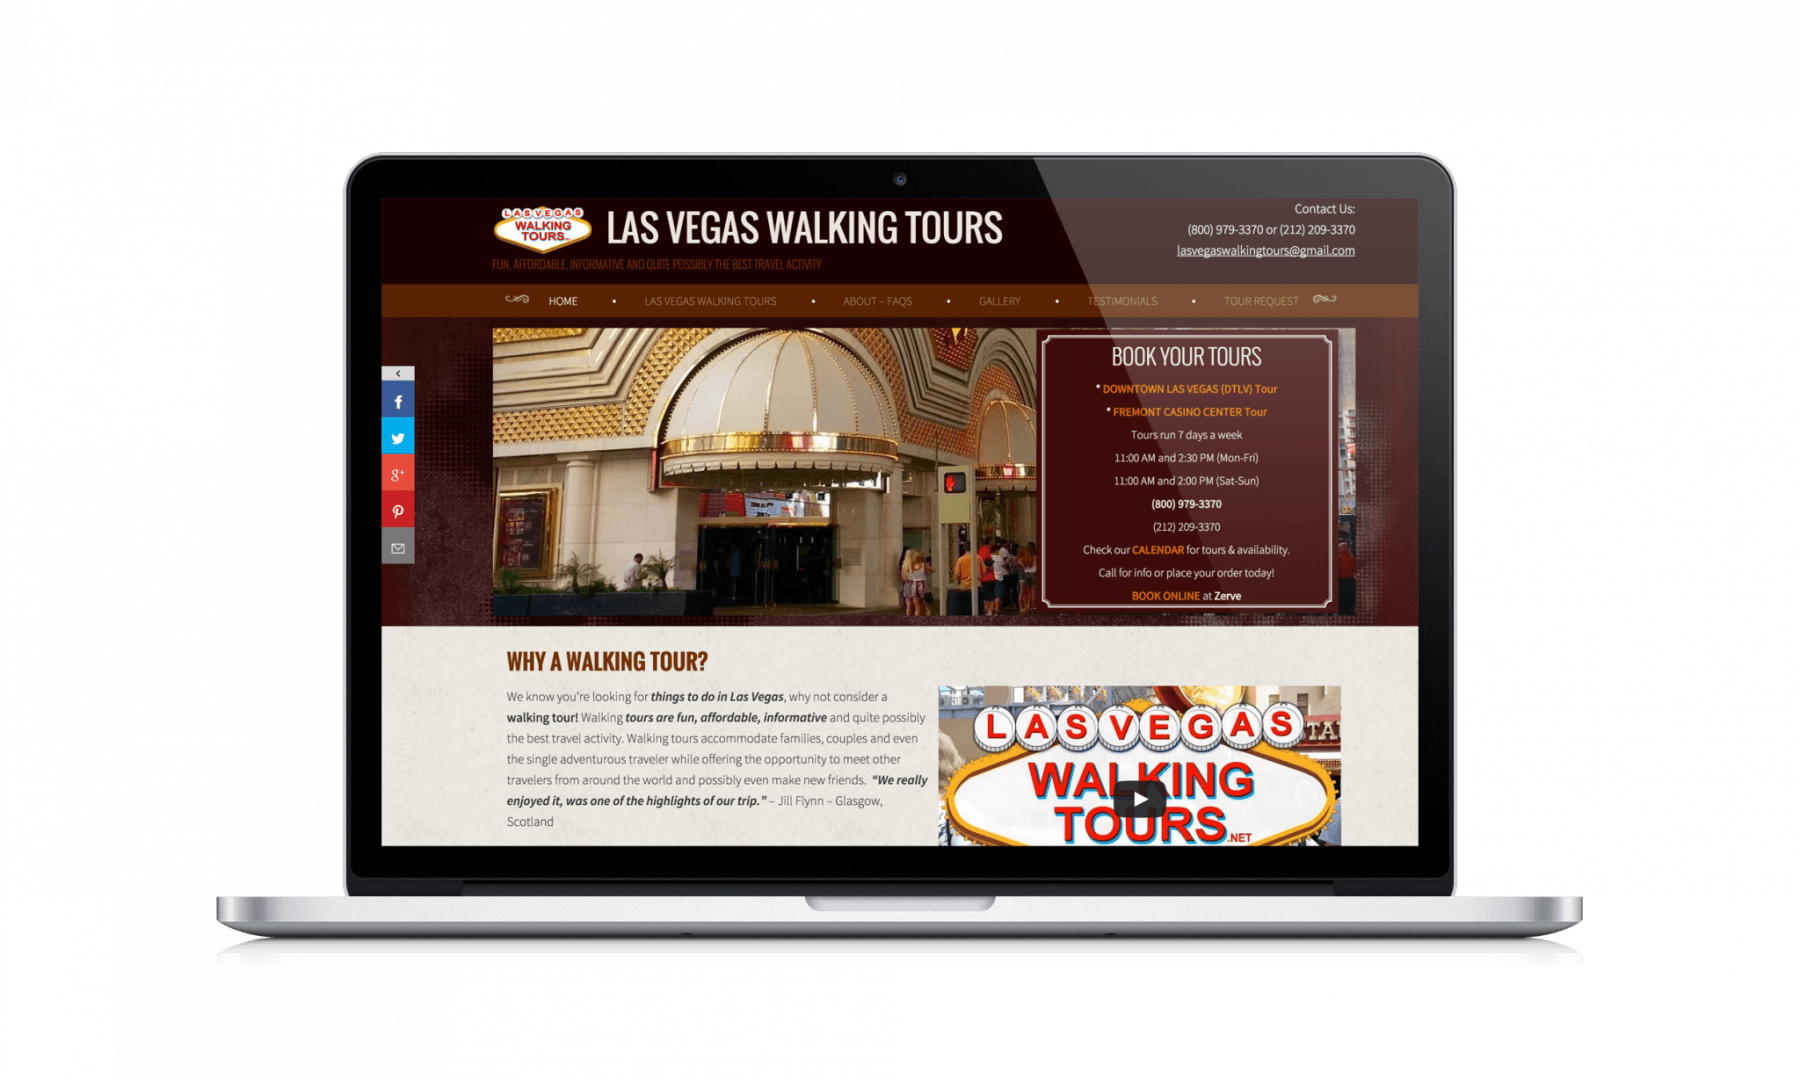 Las Vegas Web Design Las Vegas Walking Tours